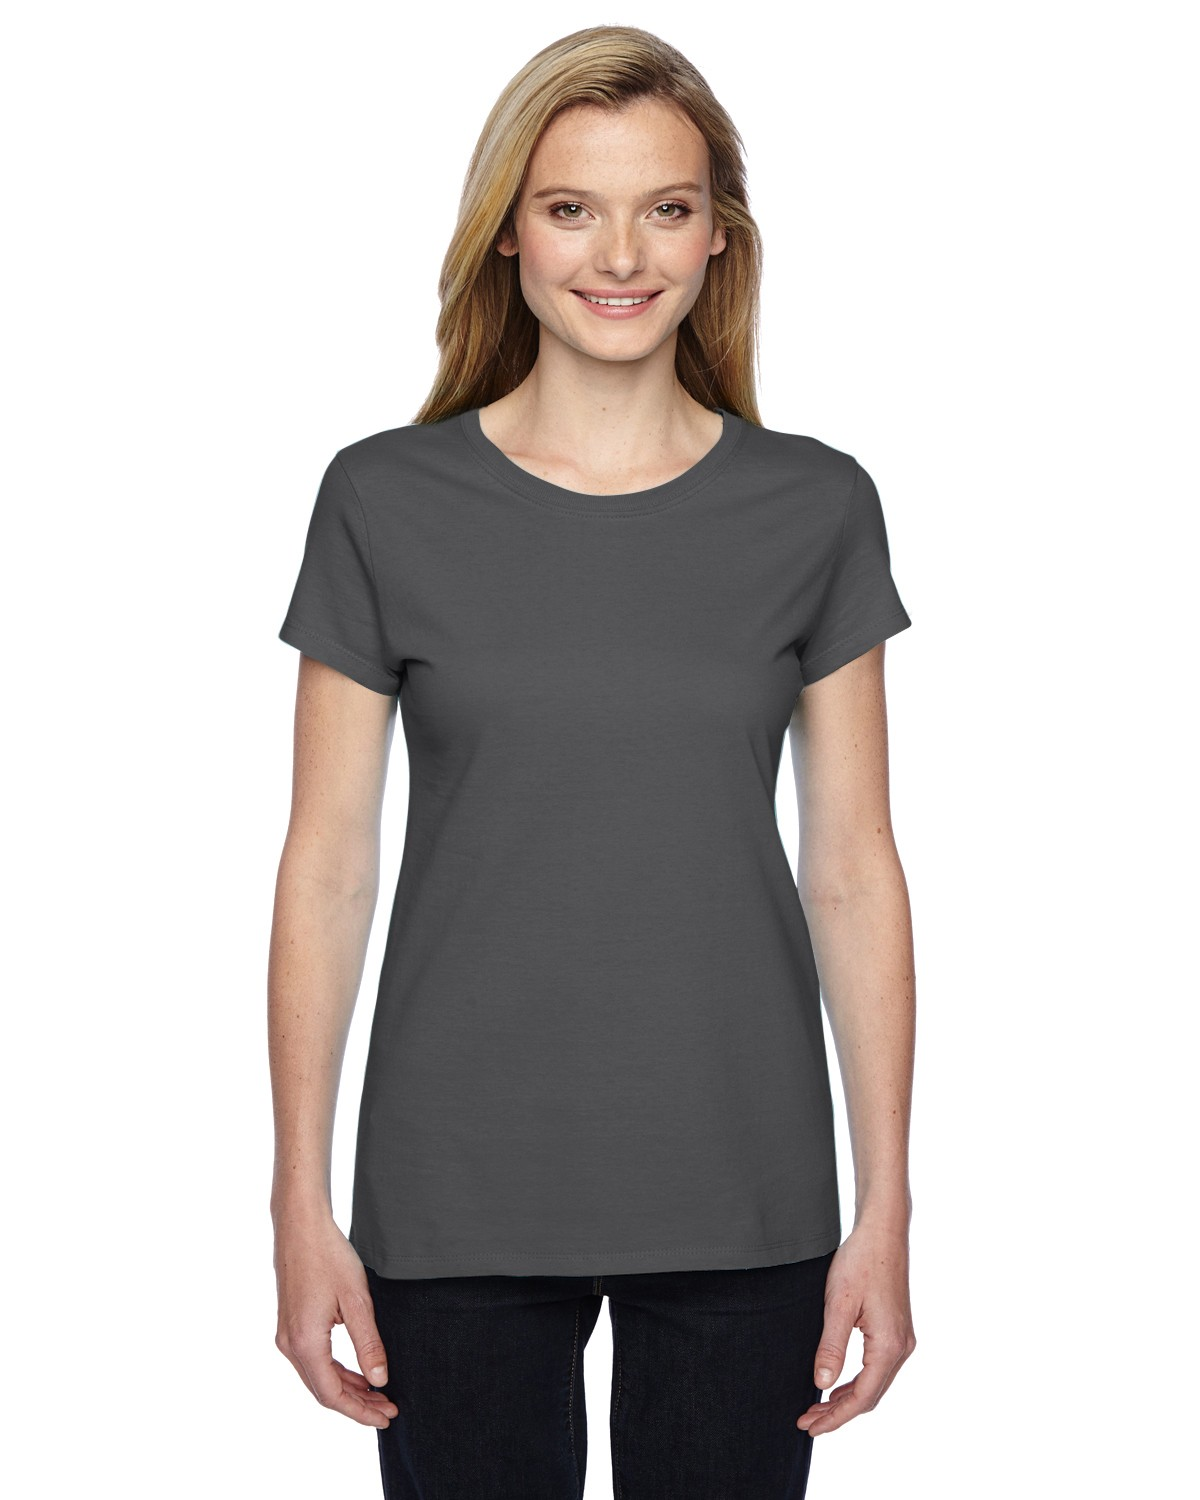 SSFJR Fruit of the Loom CHARCOAL GREY